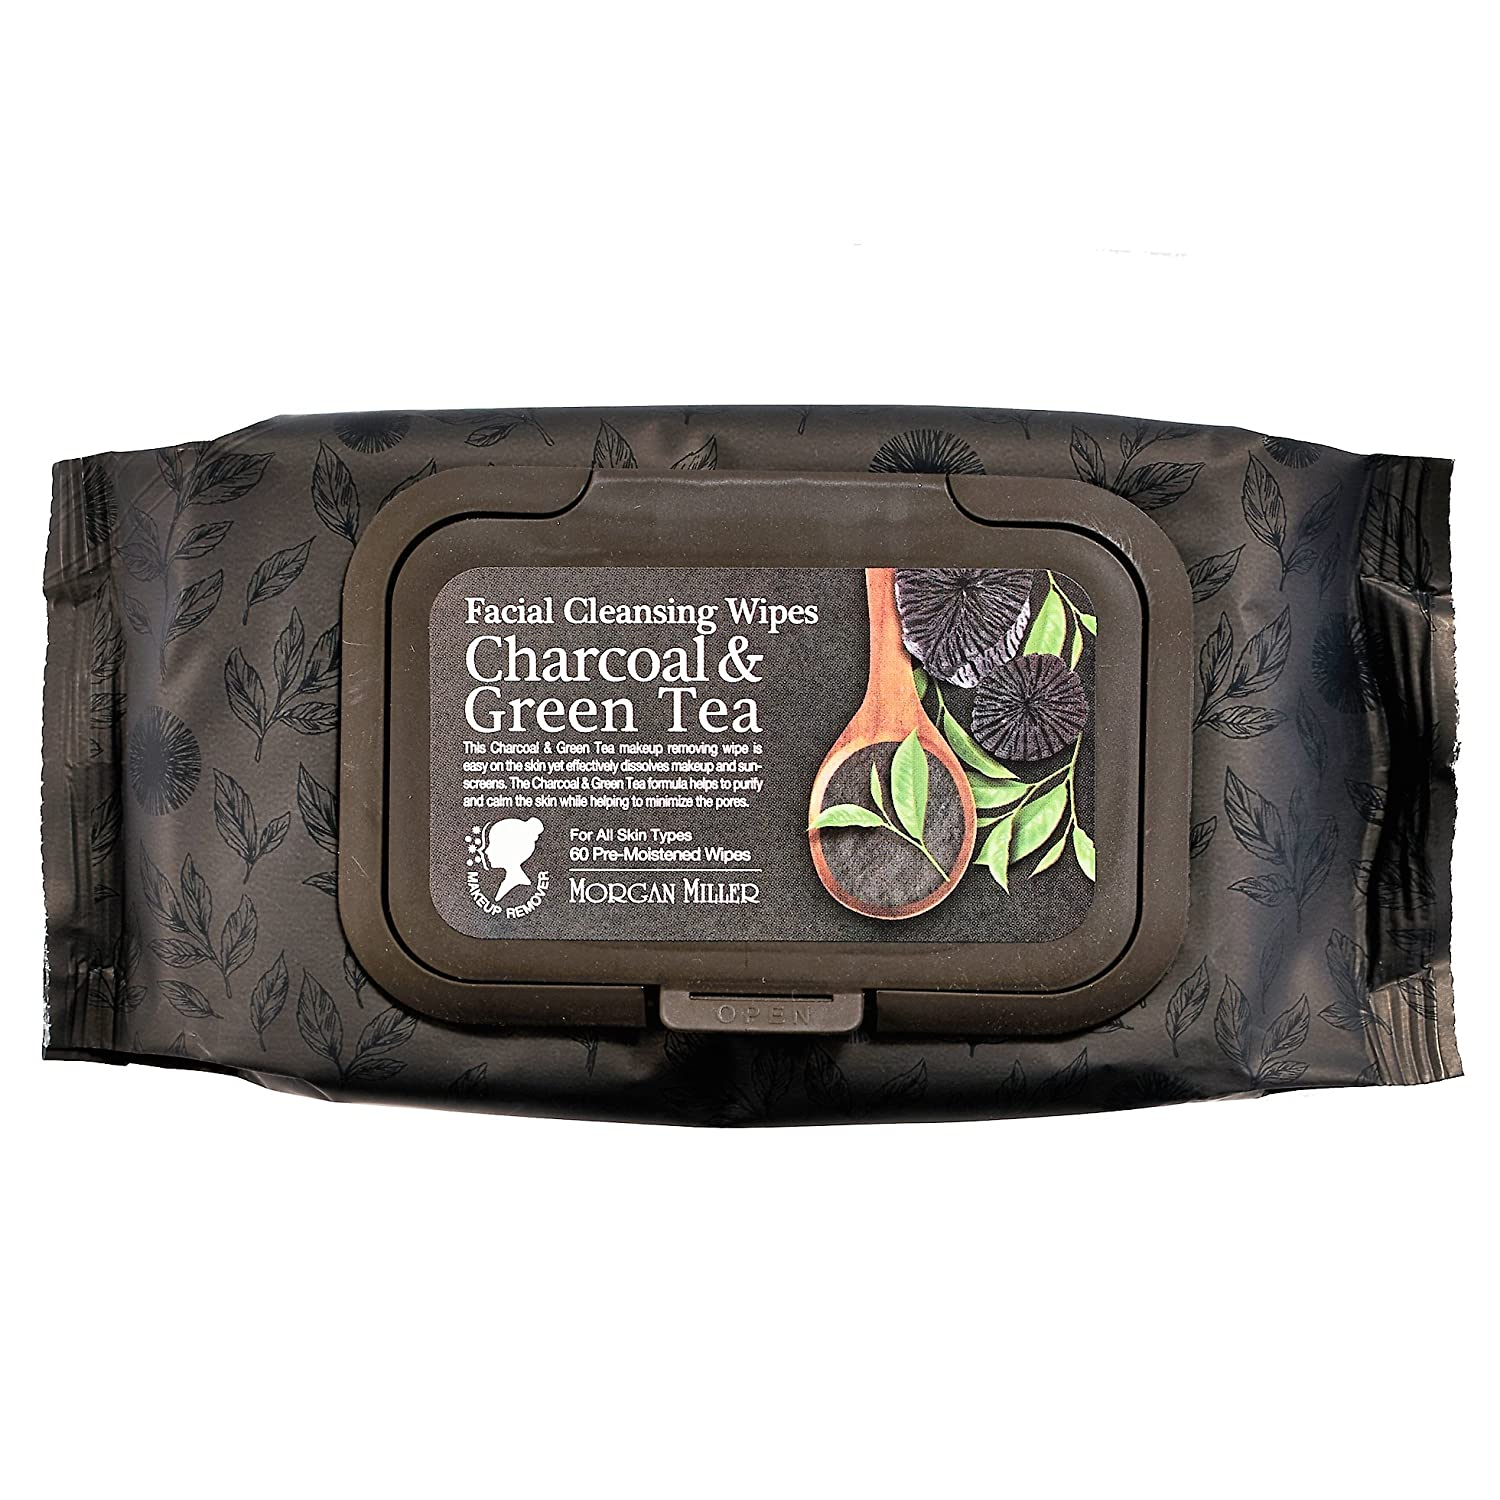 Morgan Miller Facial Cleansing, Makeup Remover Wipes Charcoal & Green Tea, 60 counts Beauty Architects